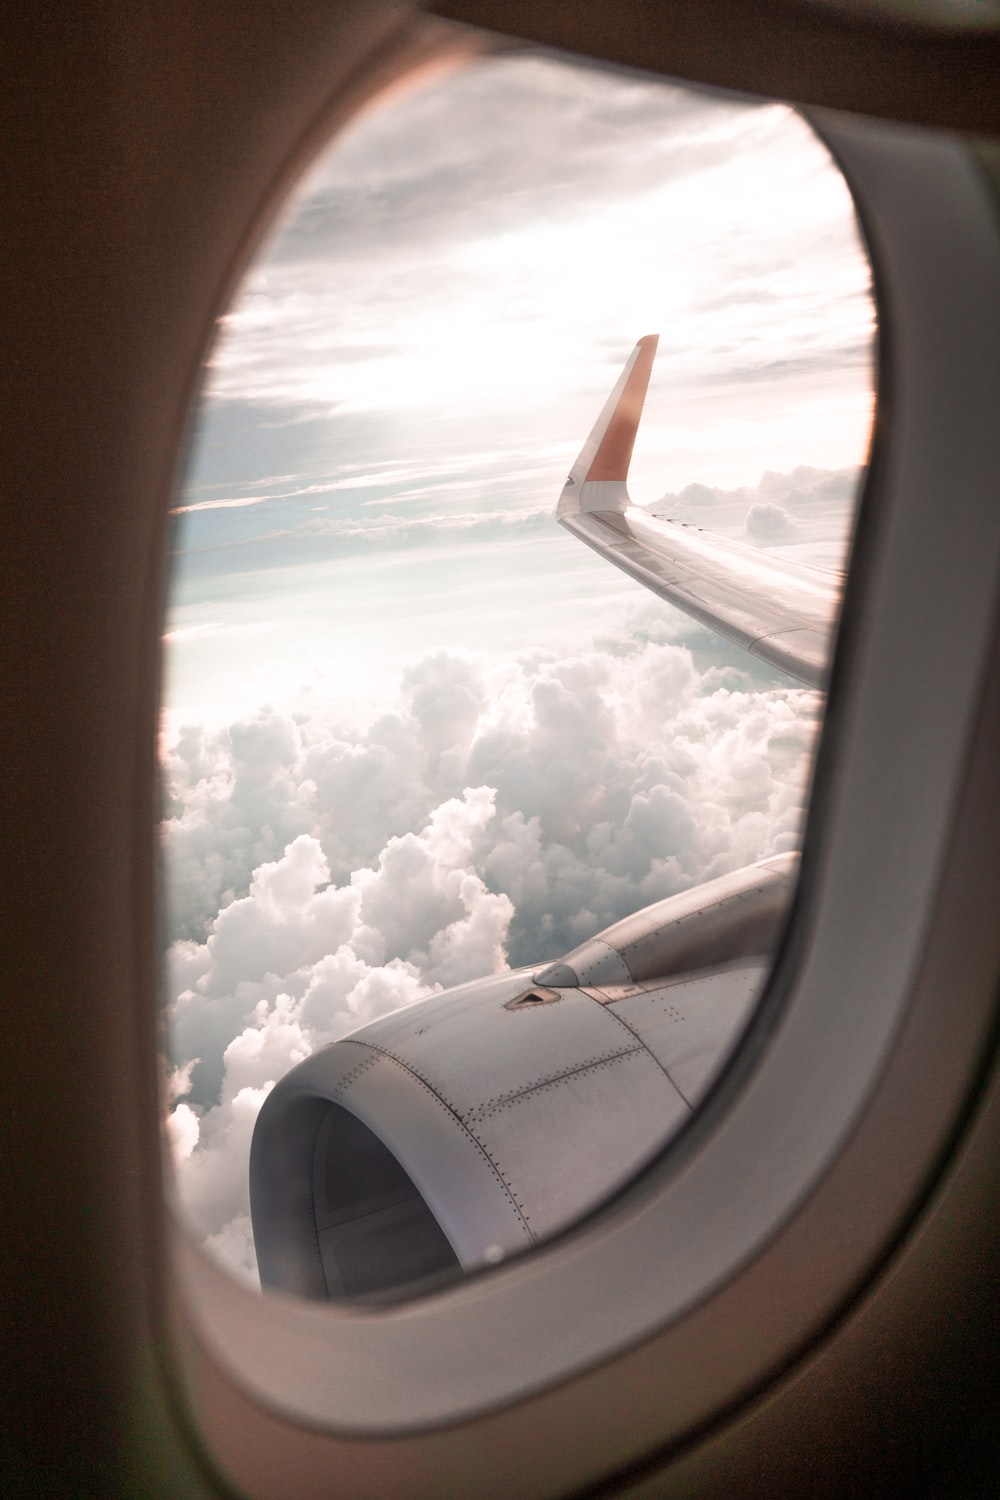 clear plane window